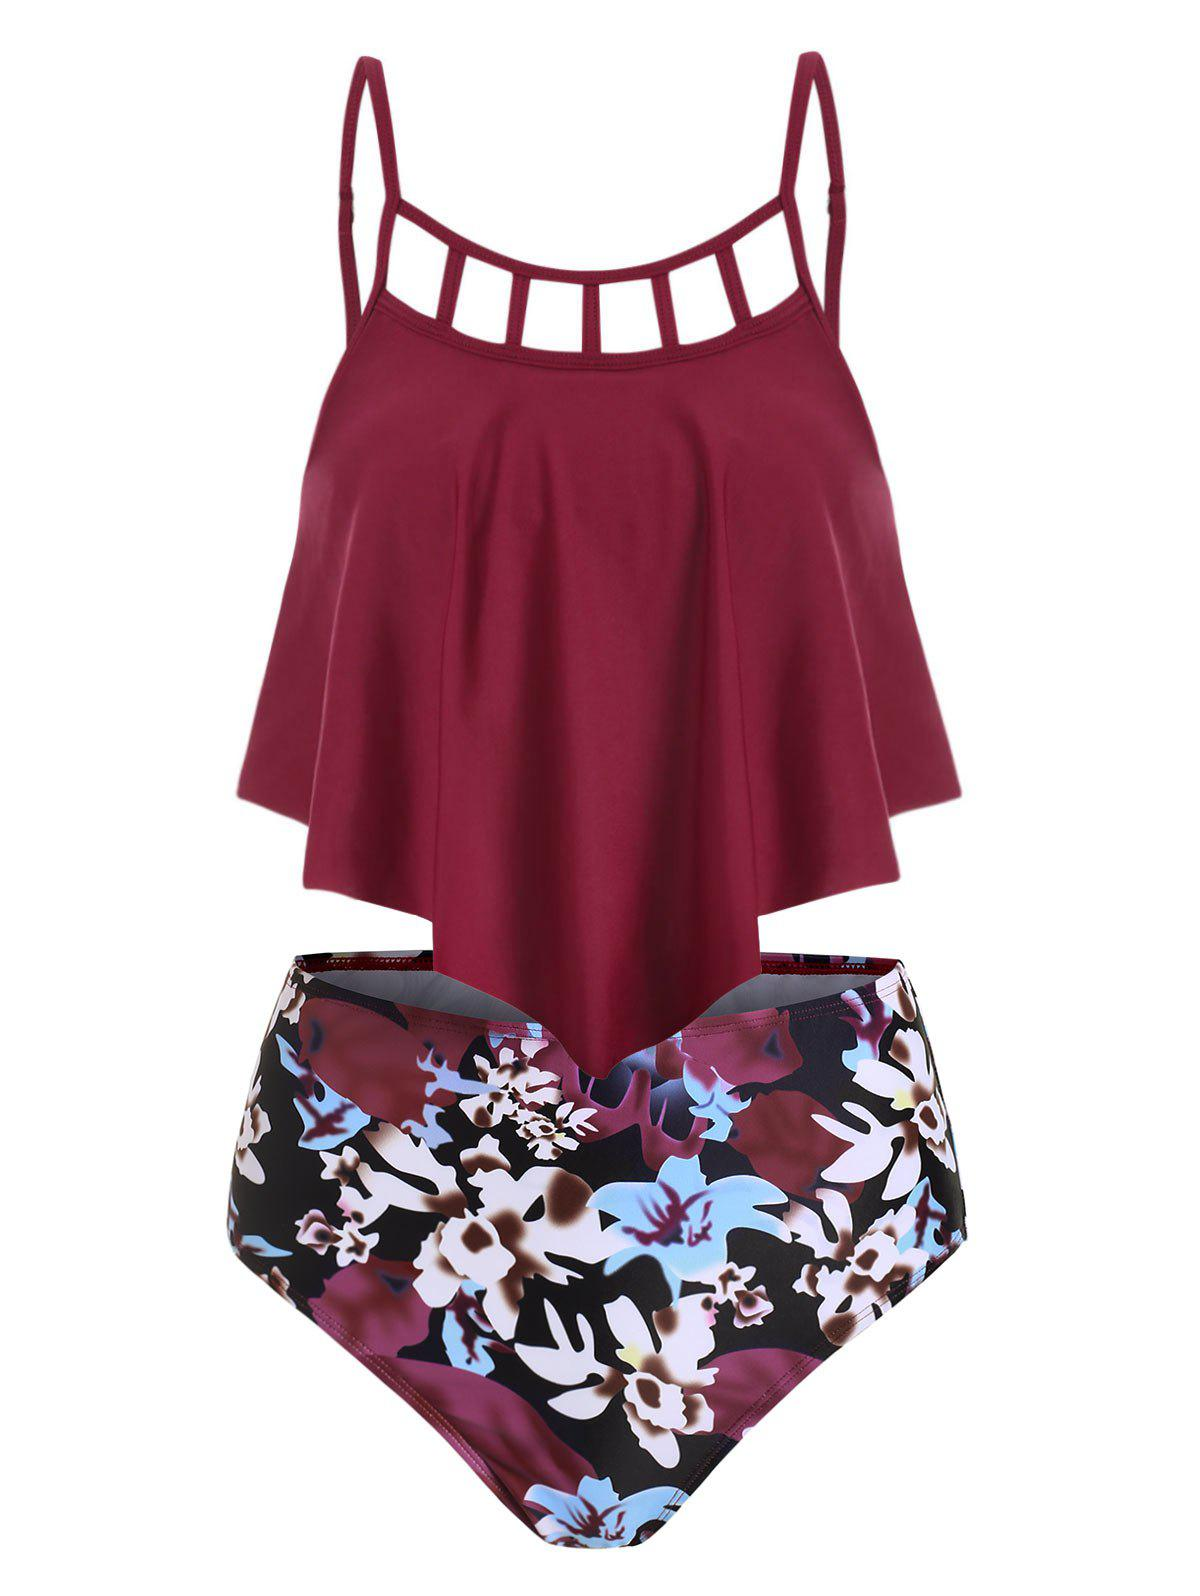 Flower Lattice Flounce Overlay High Waisted Tankini Swimsuit - RED WINE M